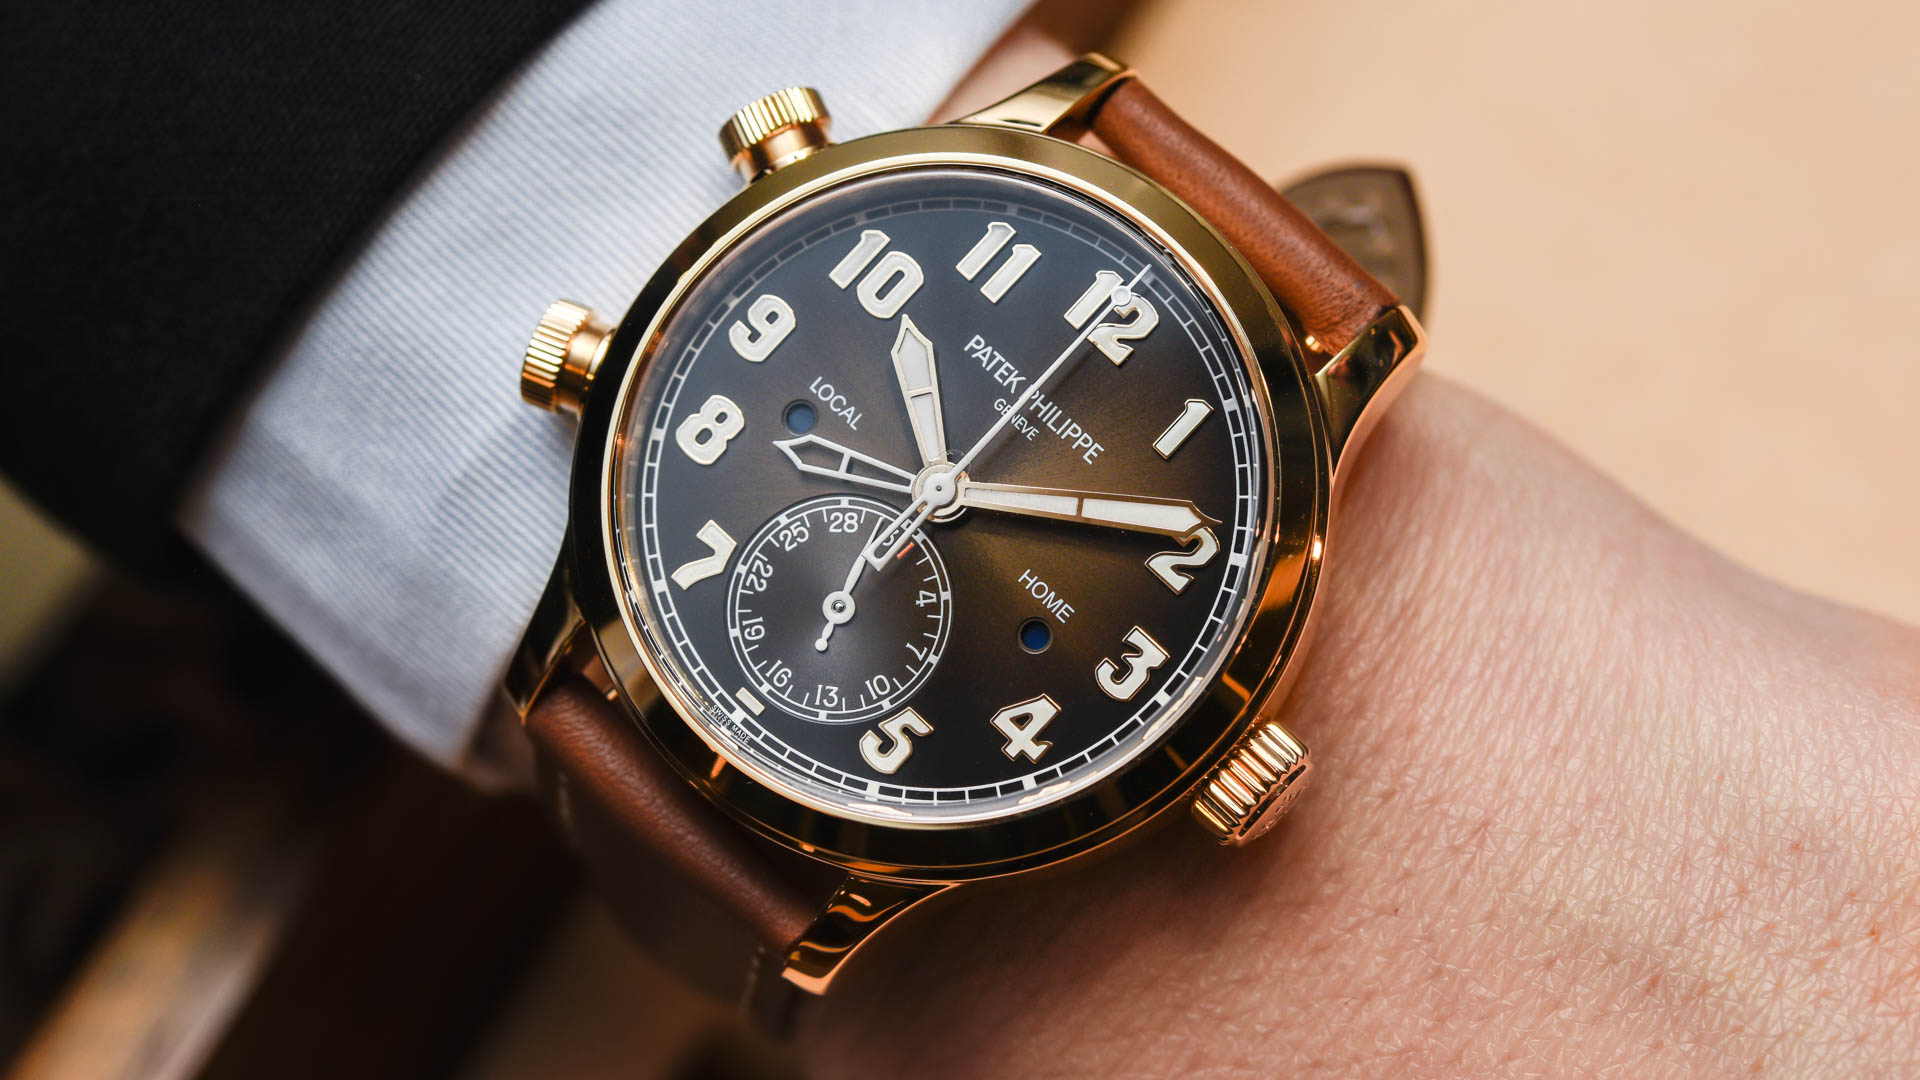 P Philippe Watch Patek Philippe Watch Reviews Information Ablogtowatch